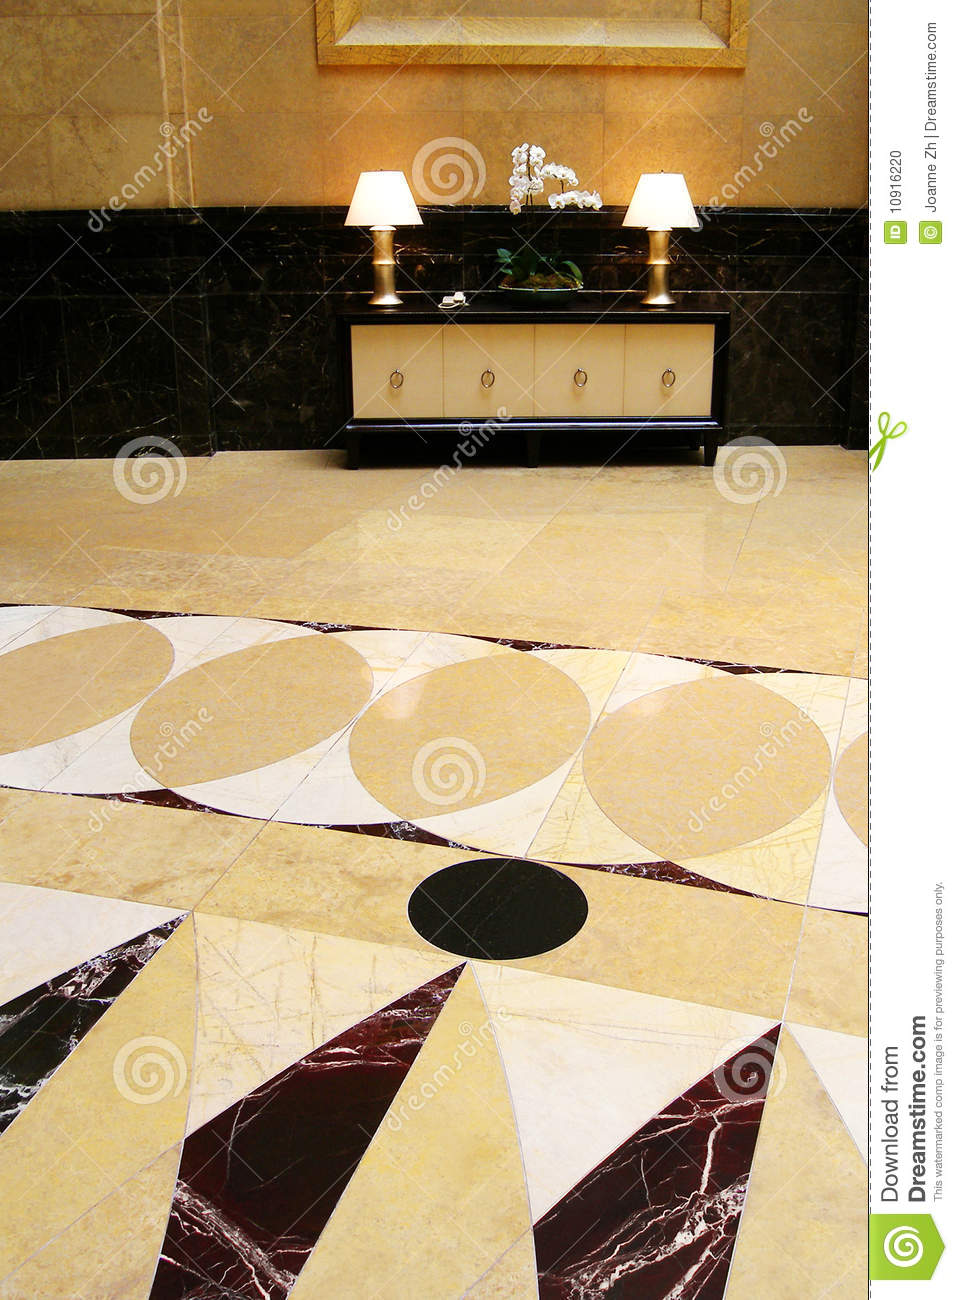 Grand hall with marble flooring